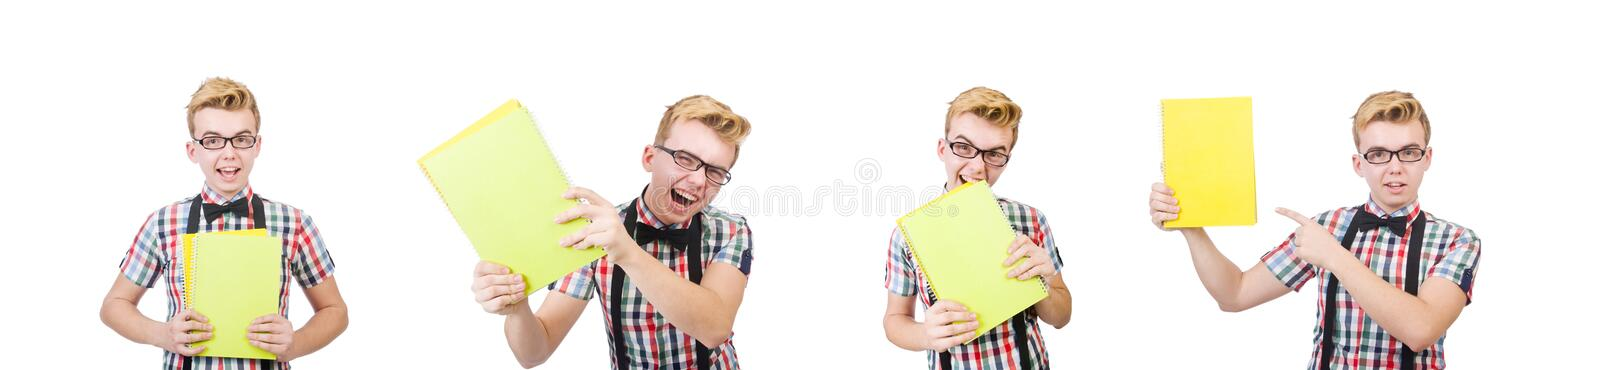 Young student isolated on the white background royalty free stock photo